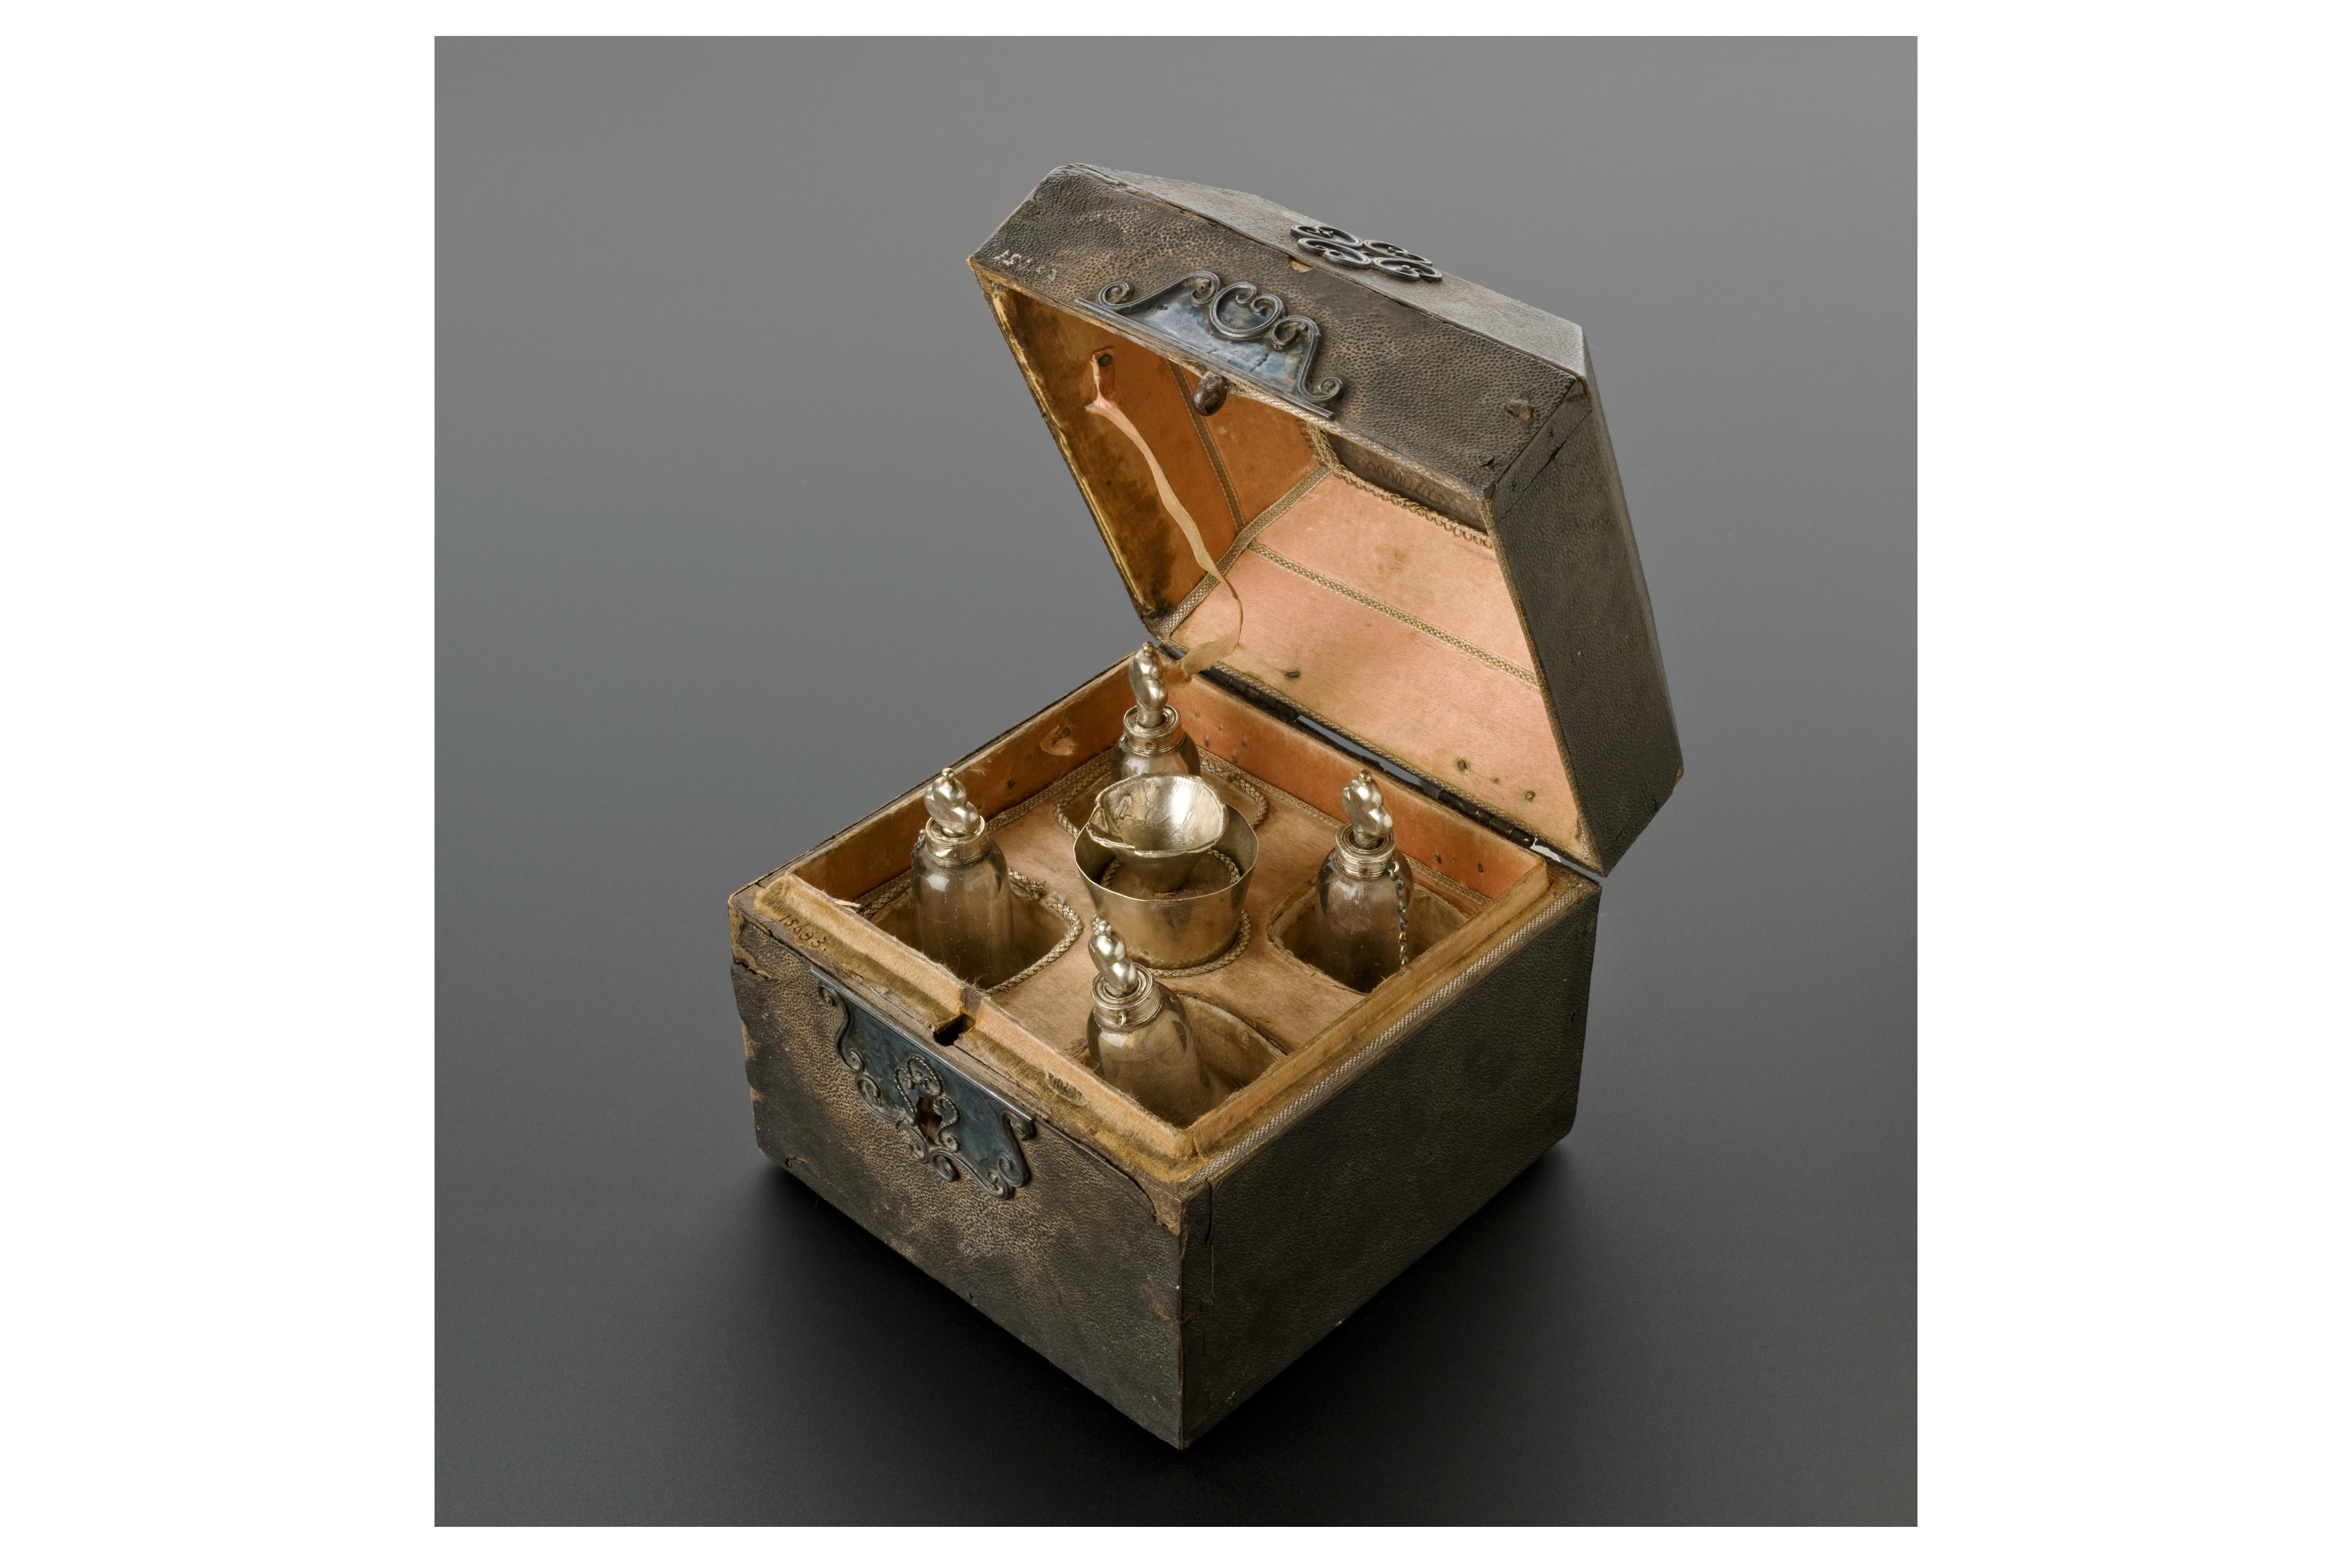 Leather covered perfume case, Netherlands, 1671-1700.